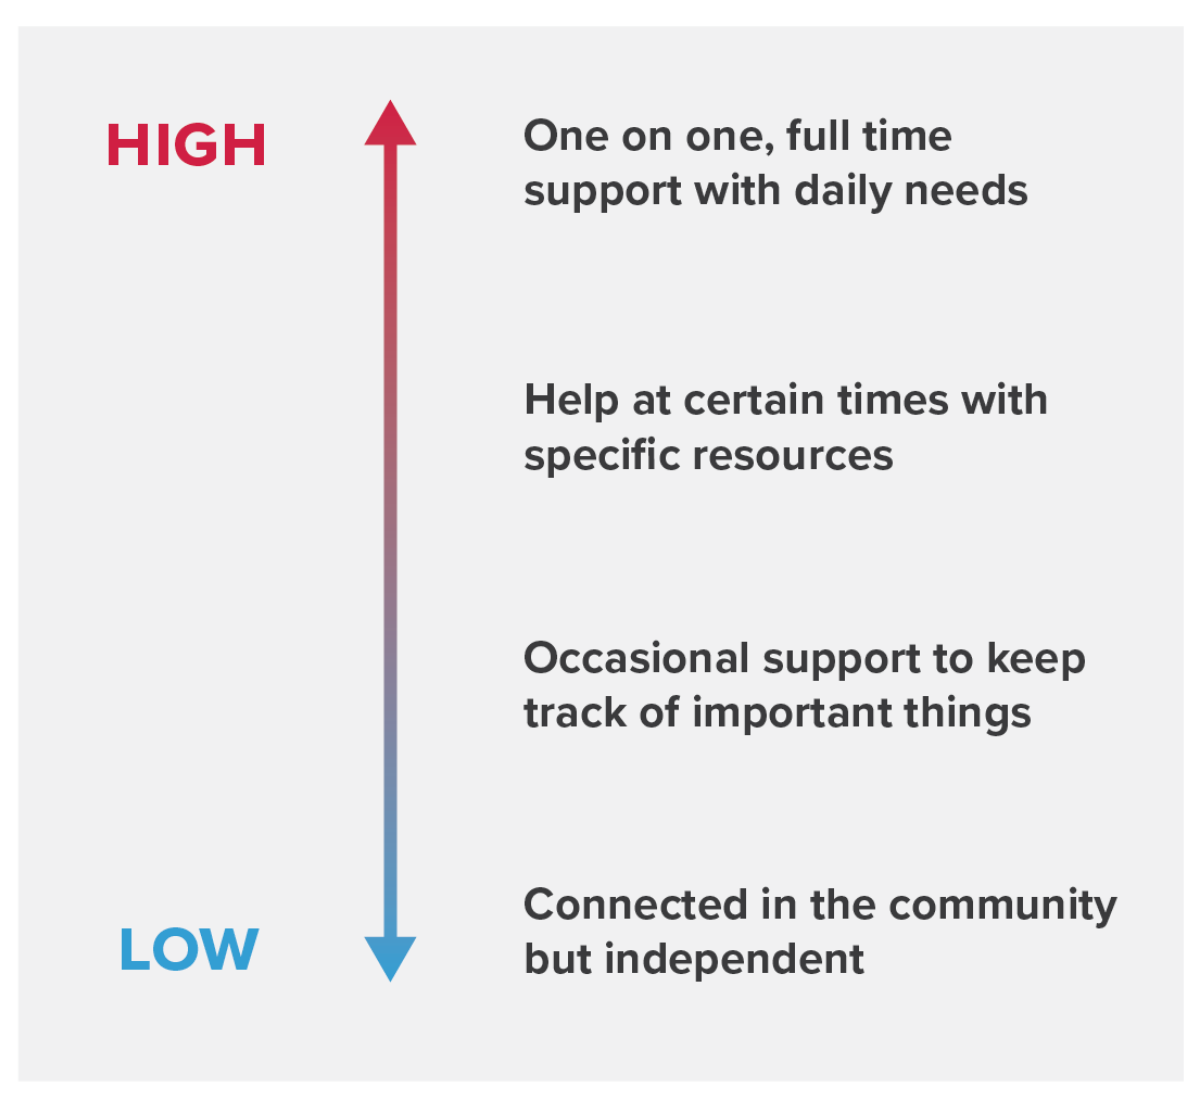 A chart that shows the spectrum of levels of support that SSI recipients get from helpers.